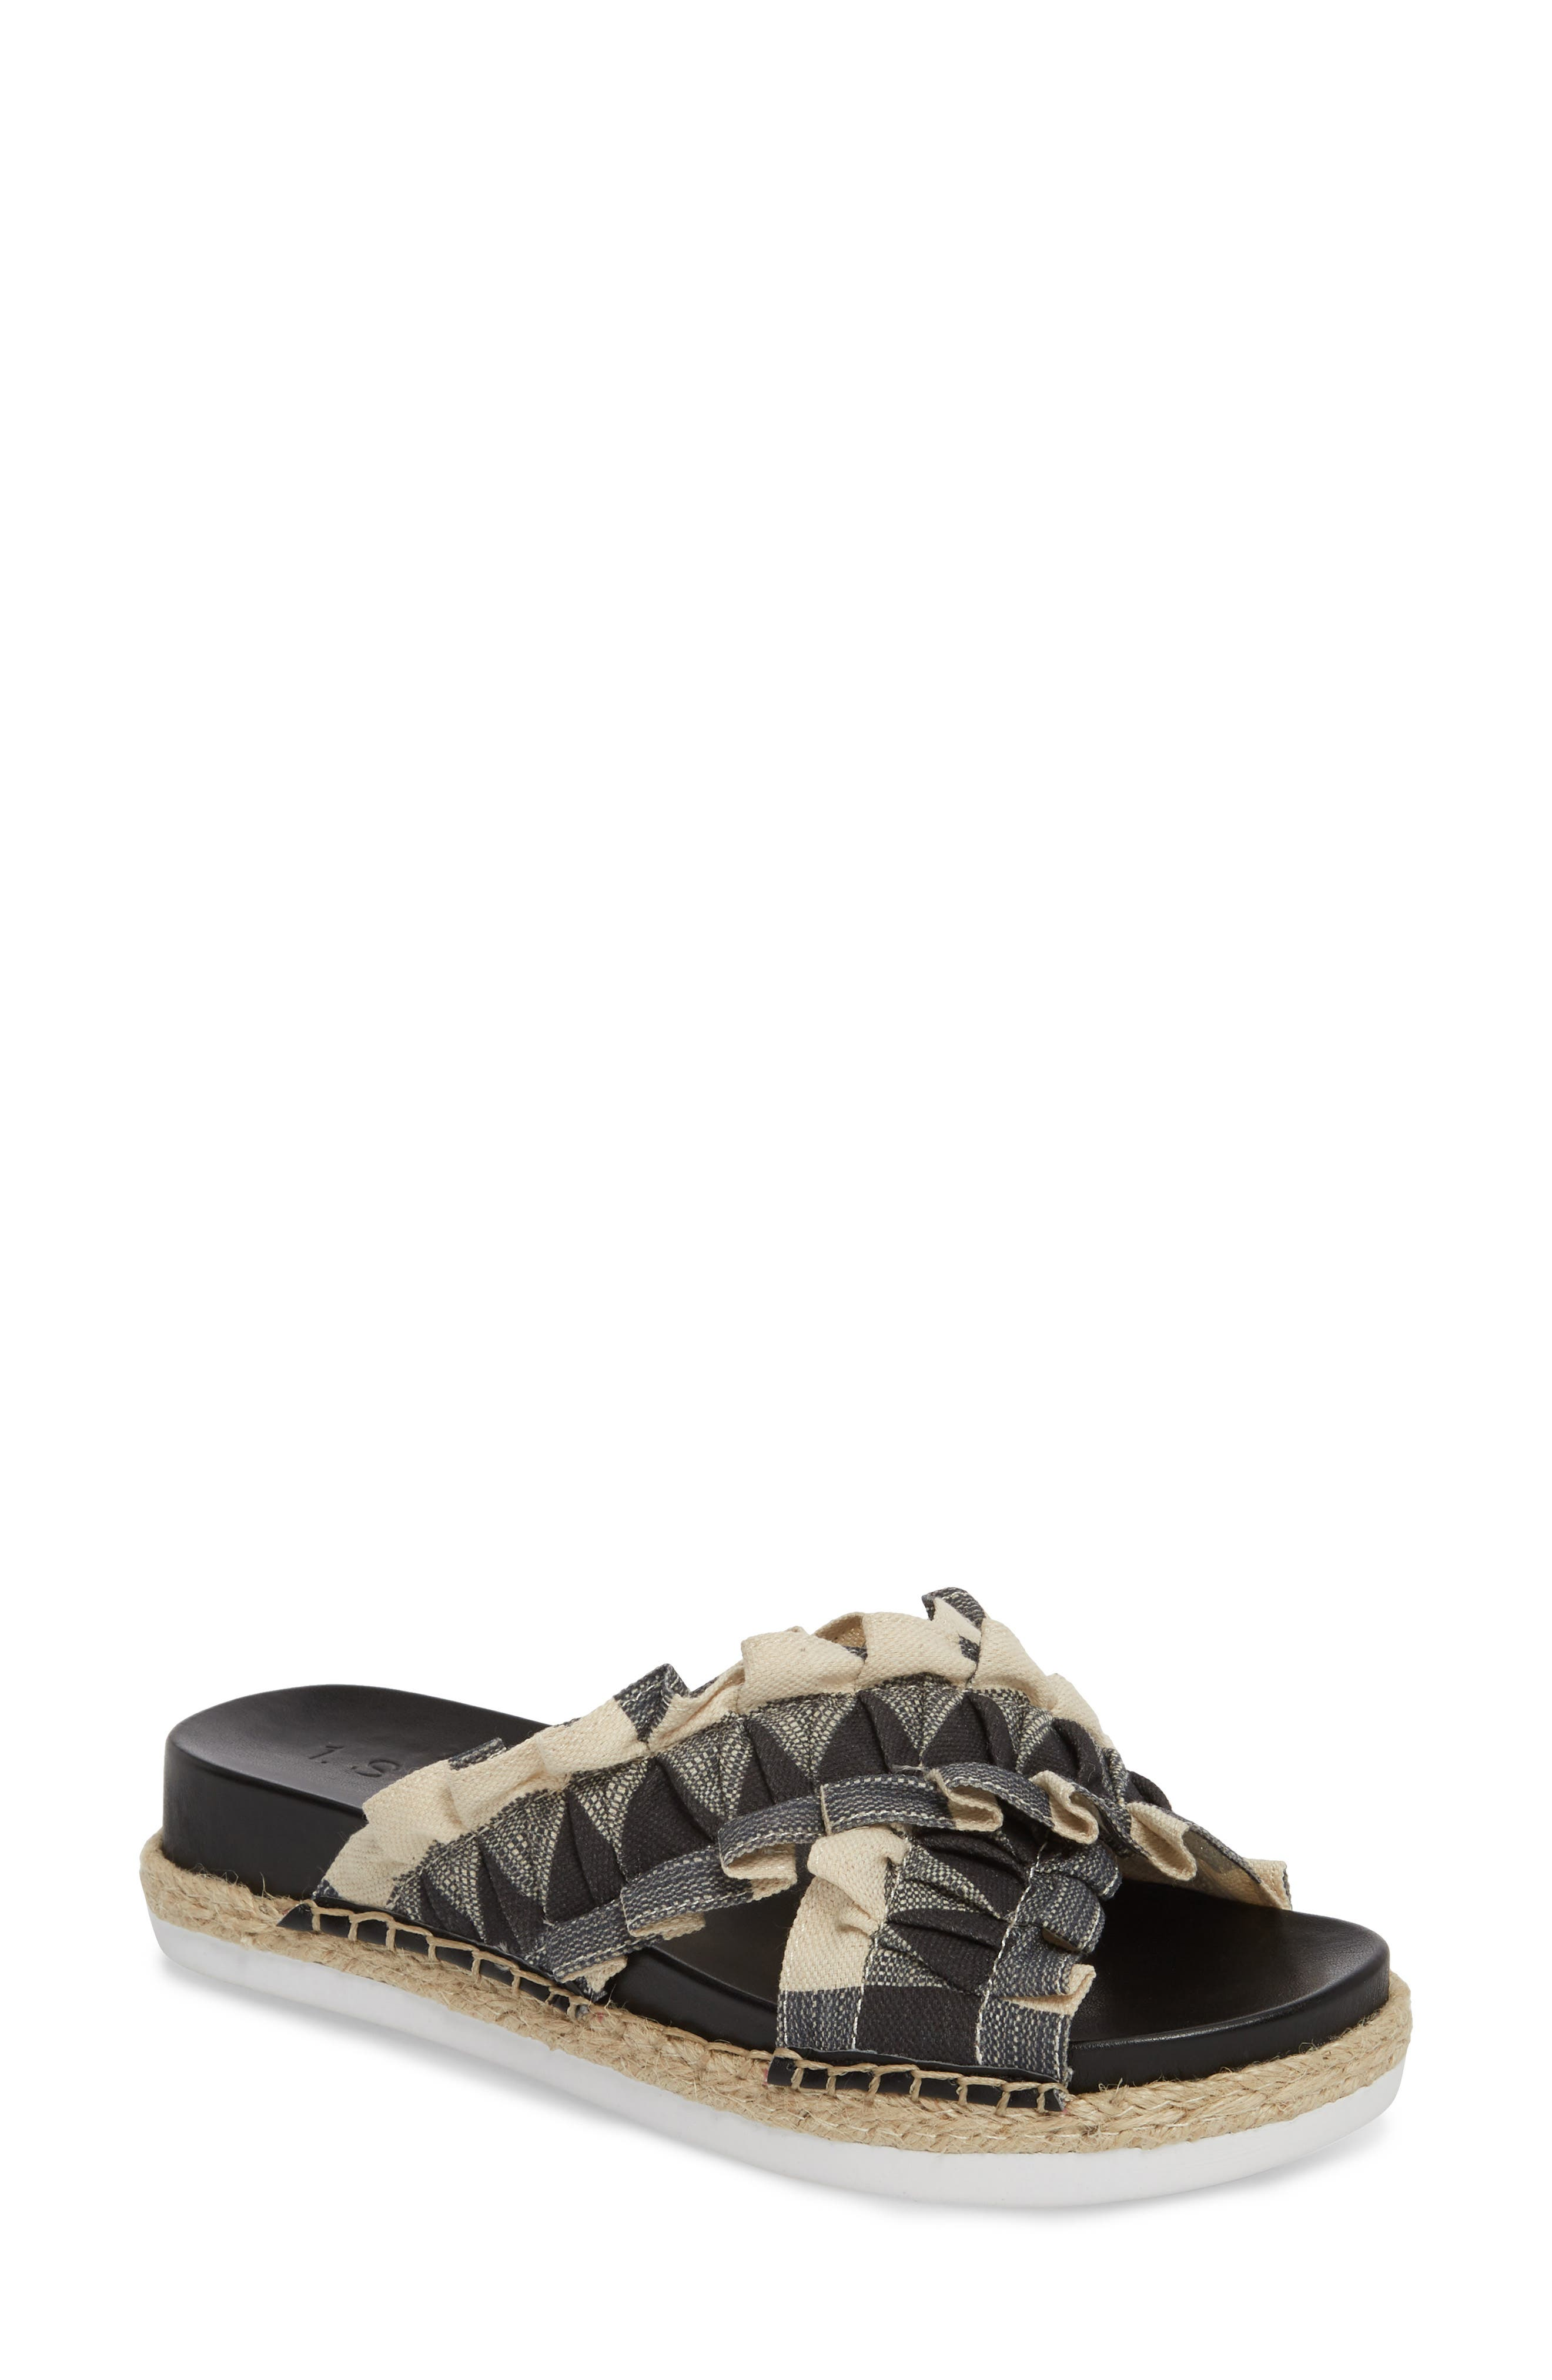 Salyn Slide Sandal,                             Main thumbnail 1, color,                             BLACK GINGHAM LINEN FABRIC